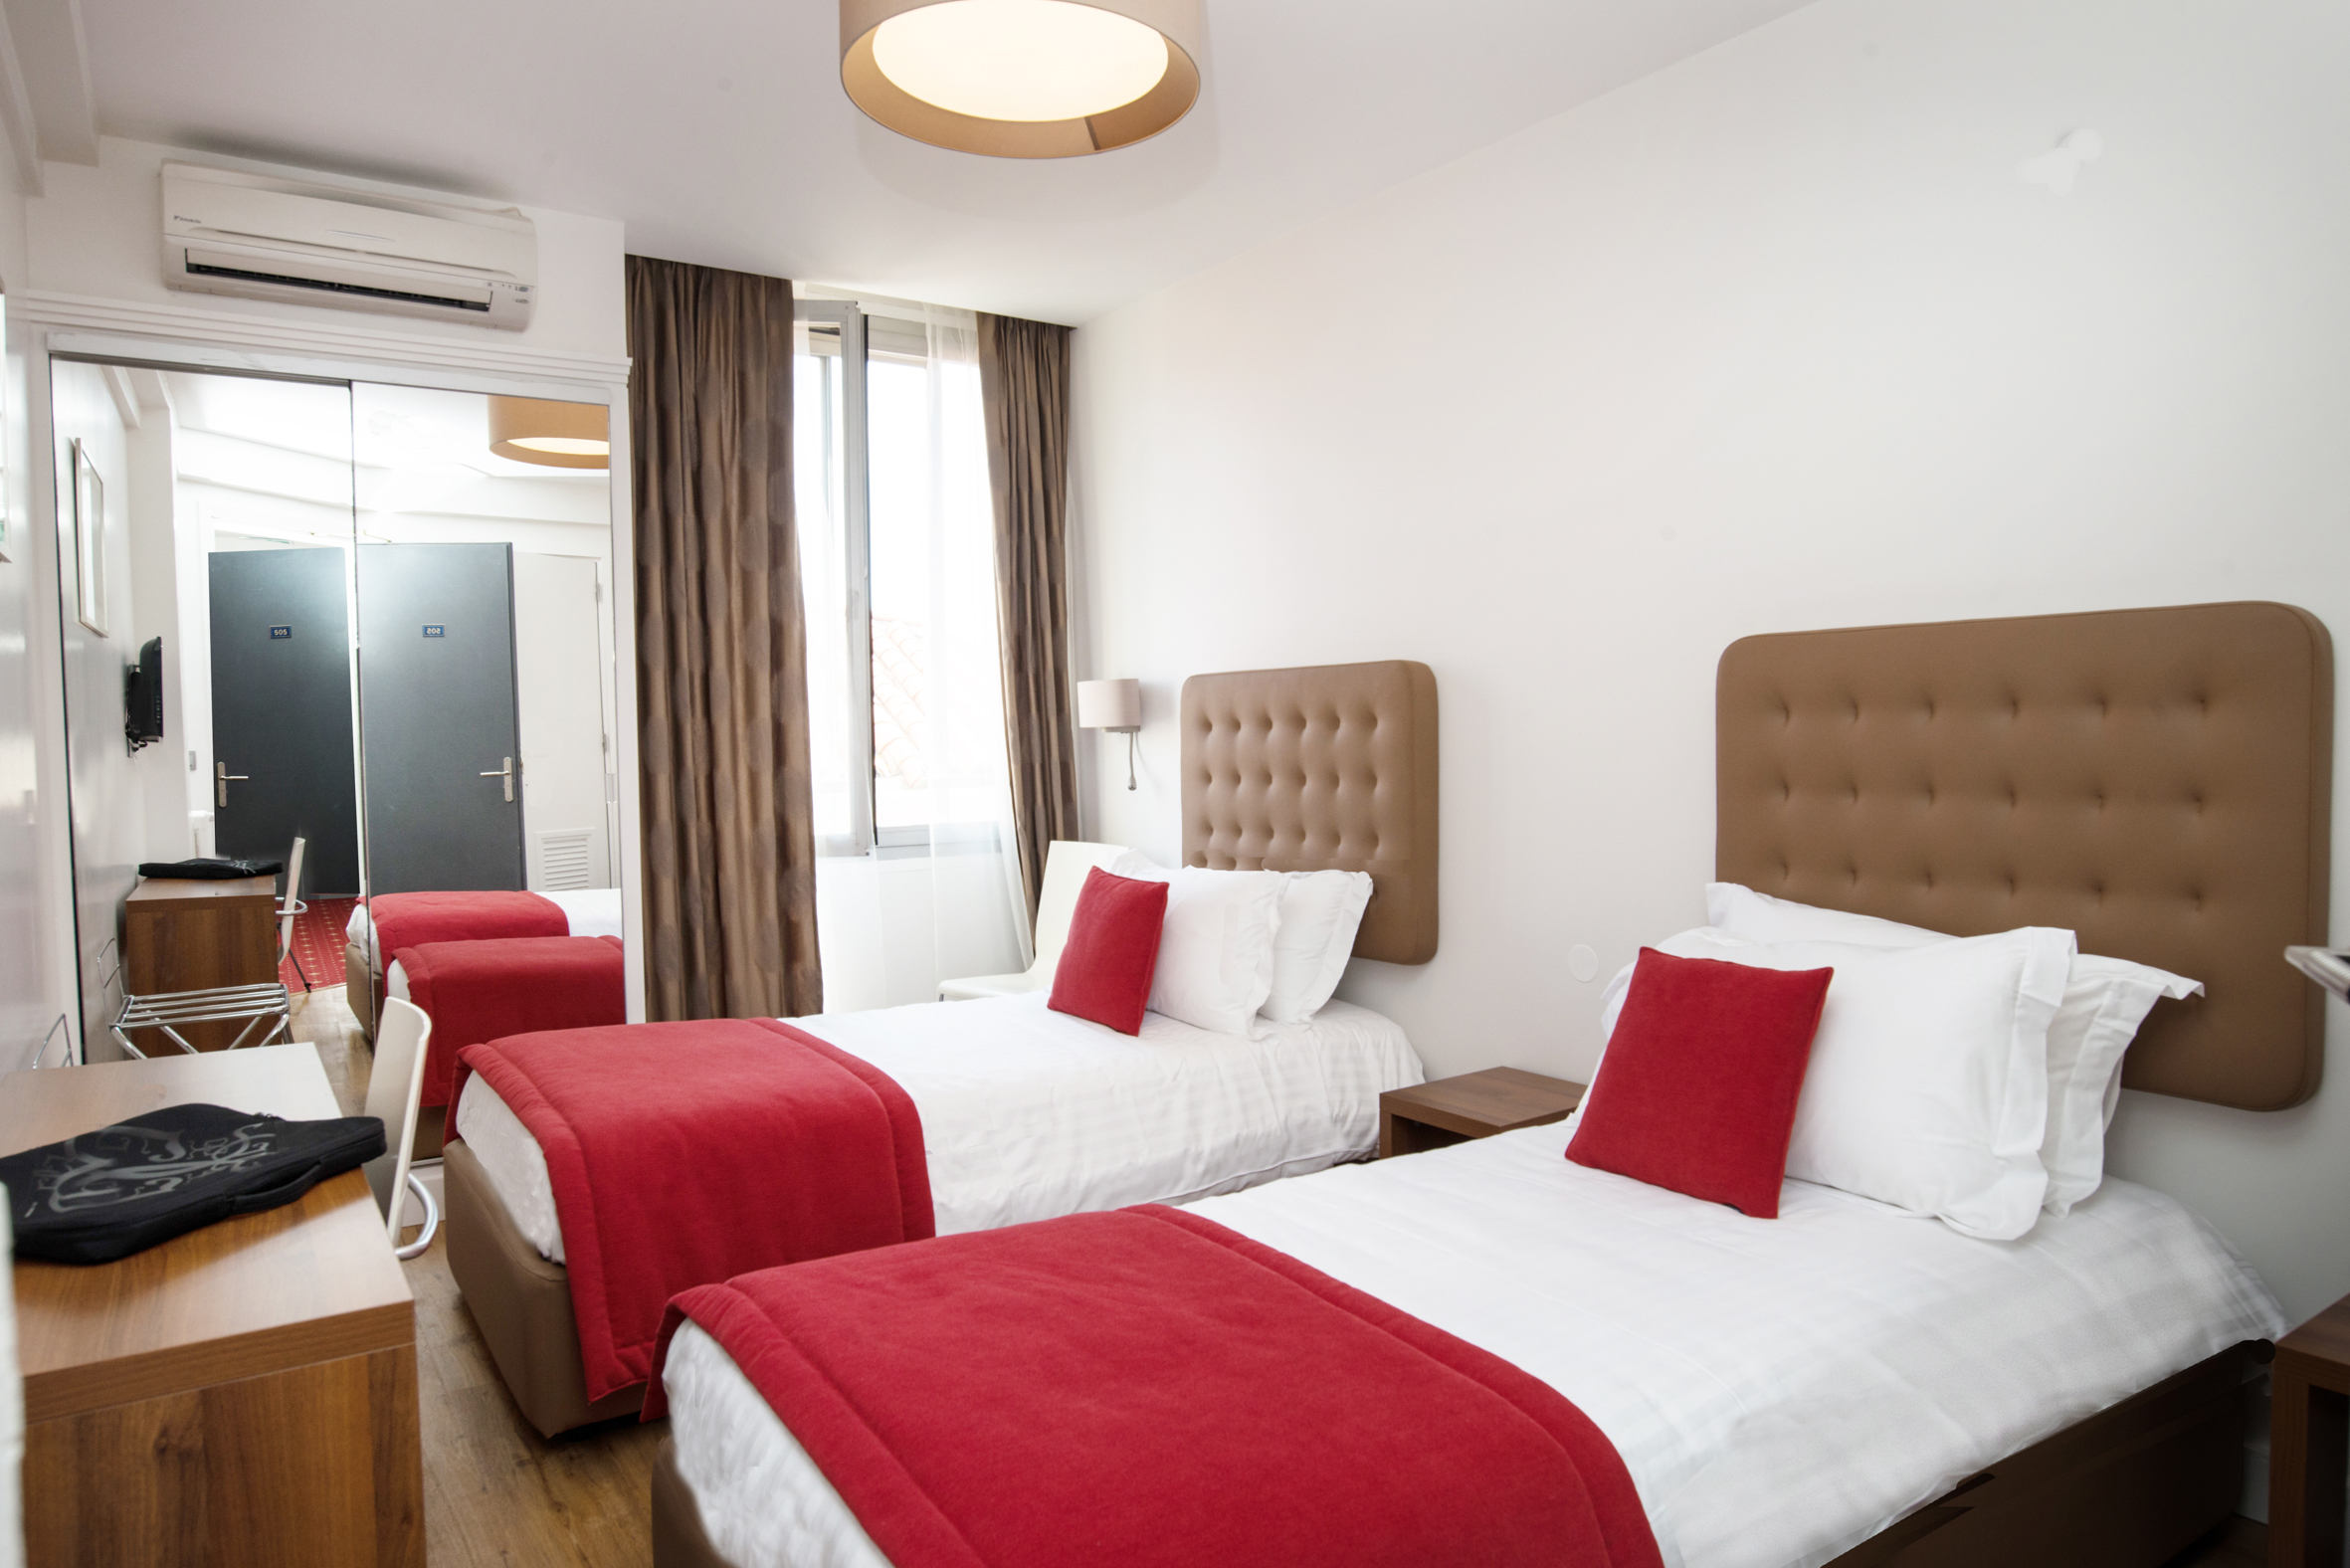 Chambre Simple Hotel Definition : Chambre double superieure definition solutions pour la